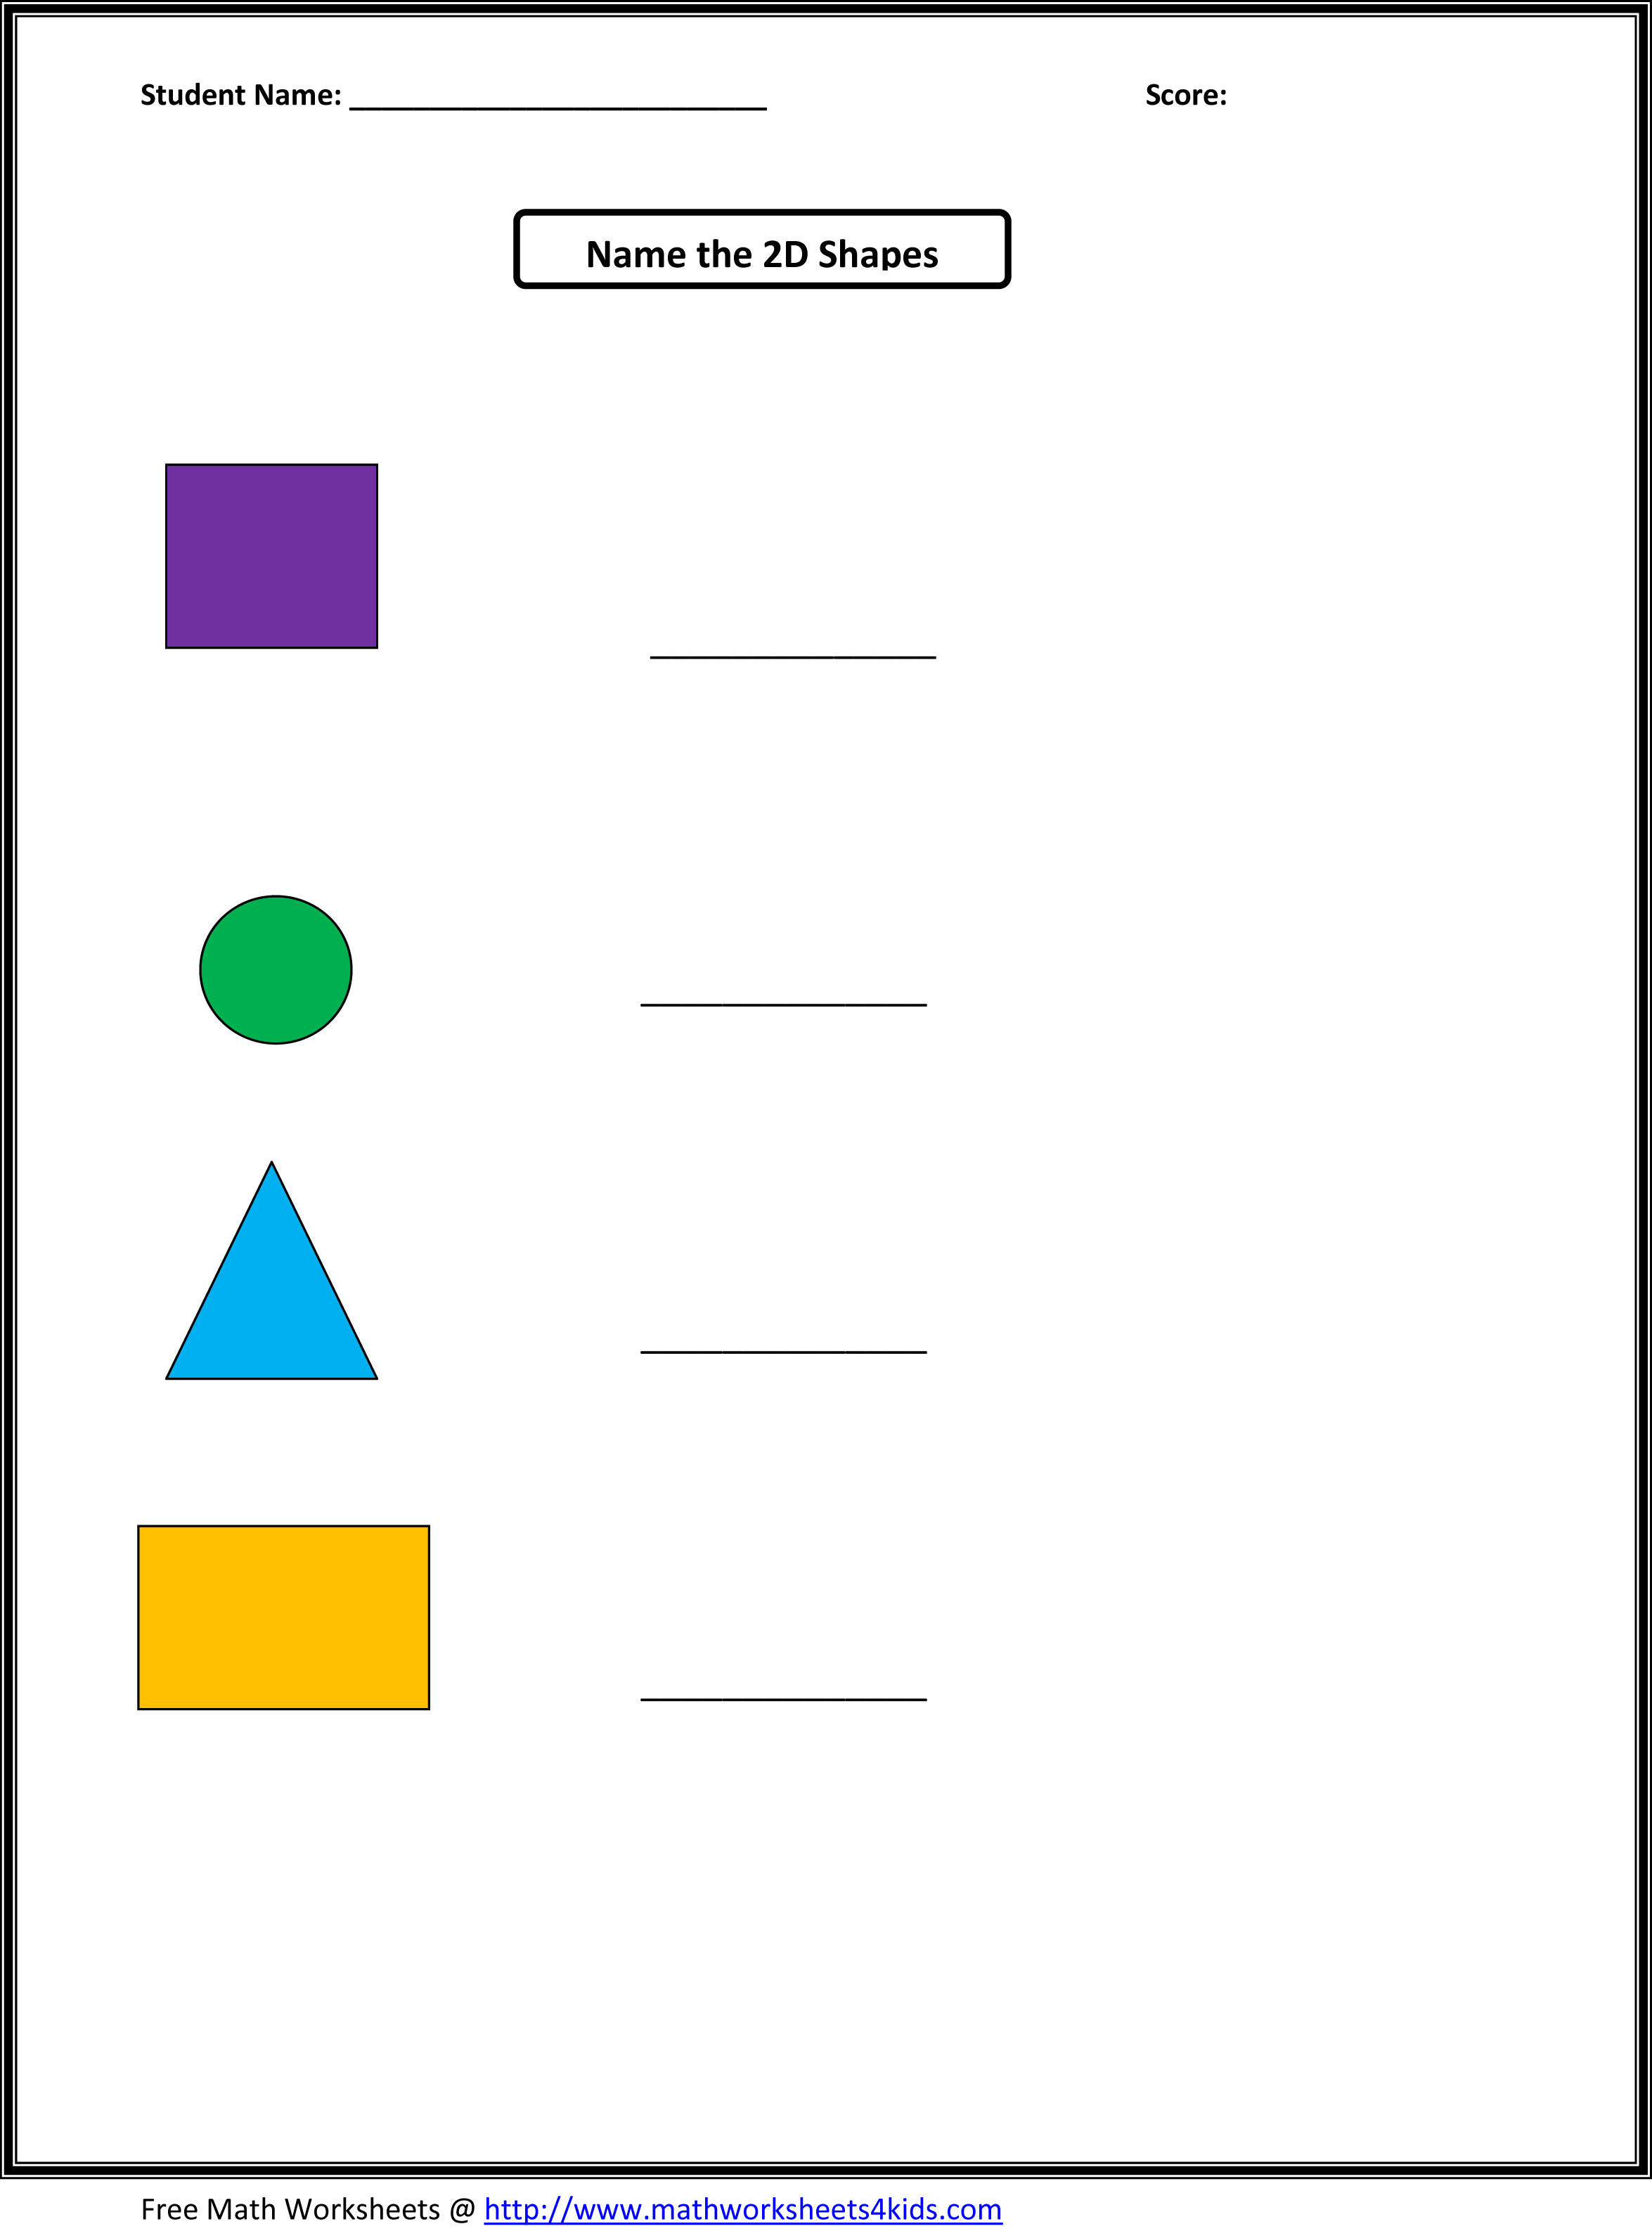 2D And 3D Shapes Worksheet – 2d and 3d Shapes Worksheets for Kindergarten